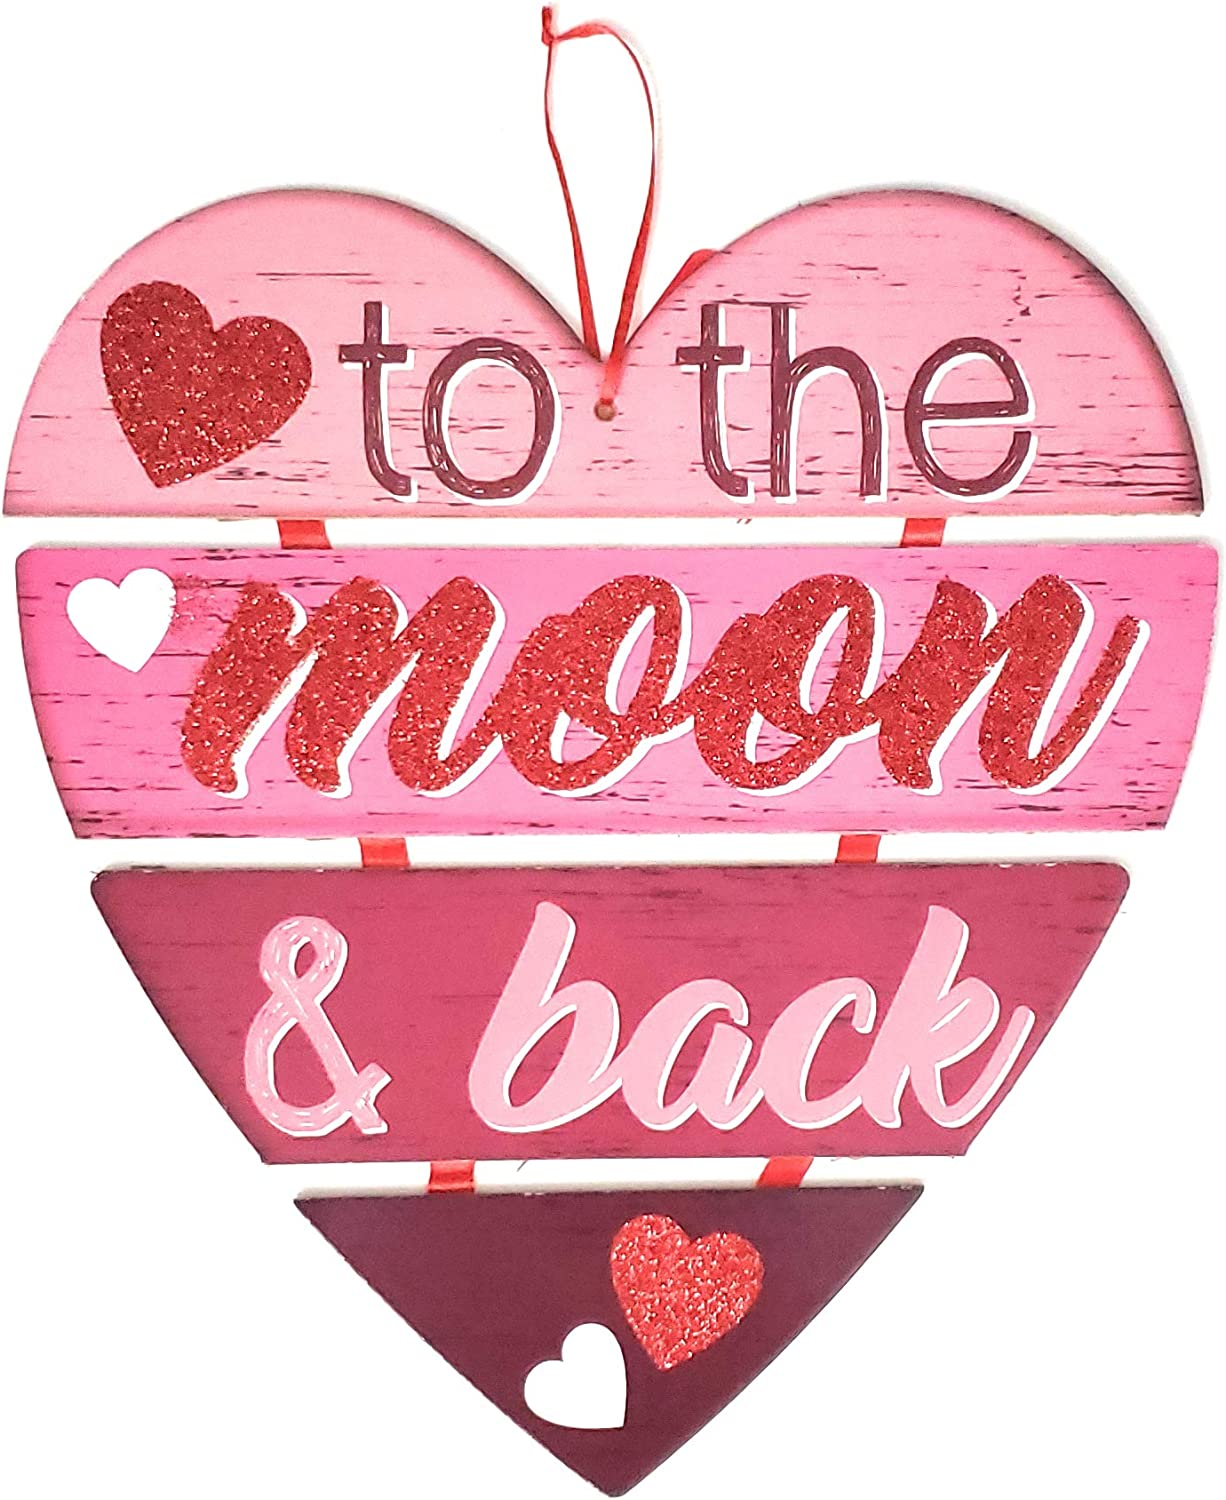 Decor Happy Valentine's DayWall Plaques Home Decoration Decorations Valentine Message Hanging Hearts Wall to The Moon & Back Sign